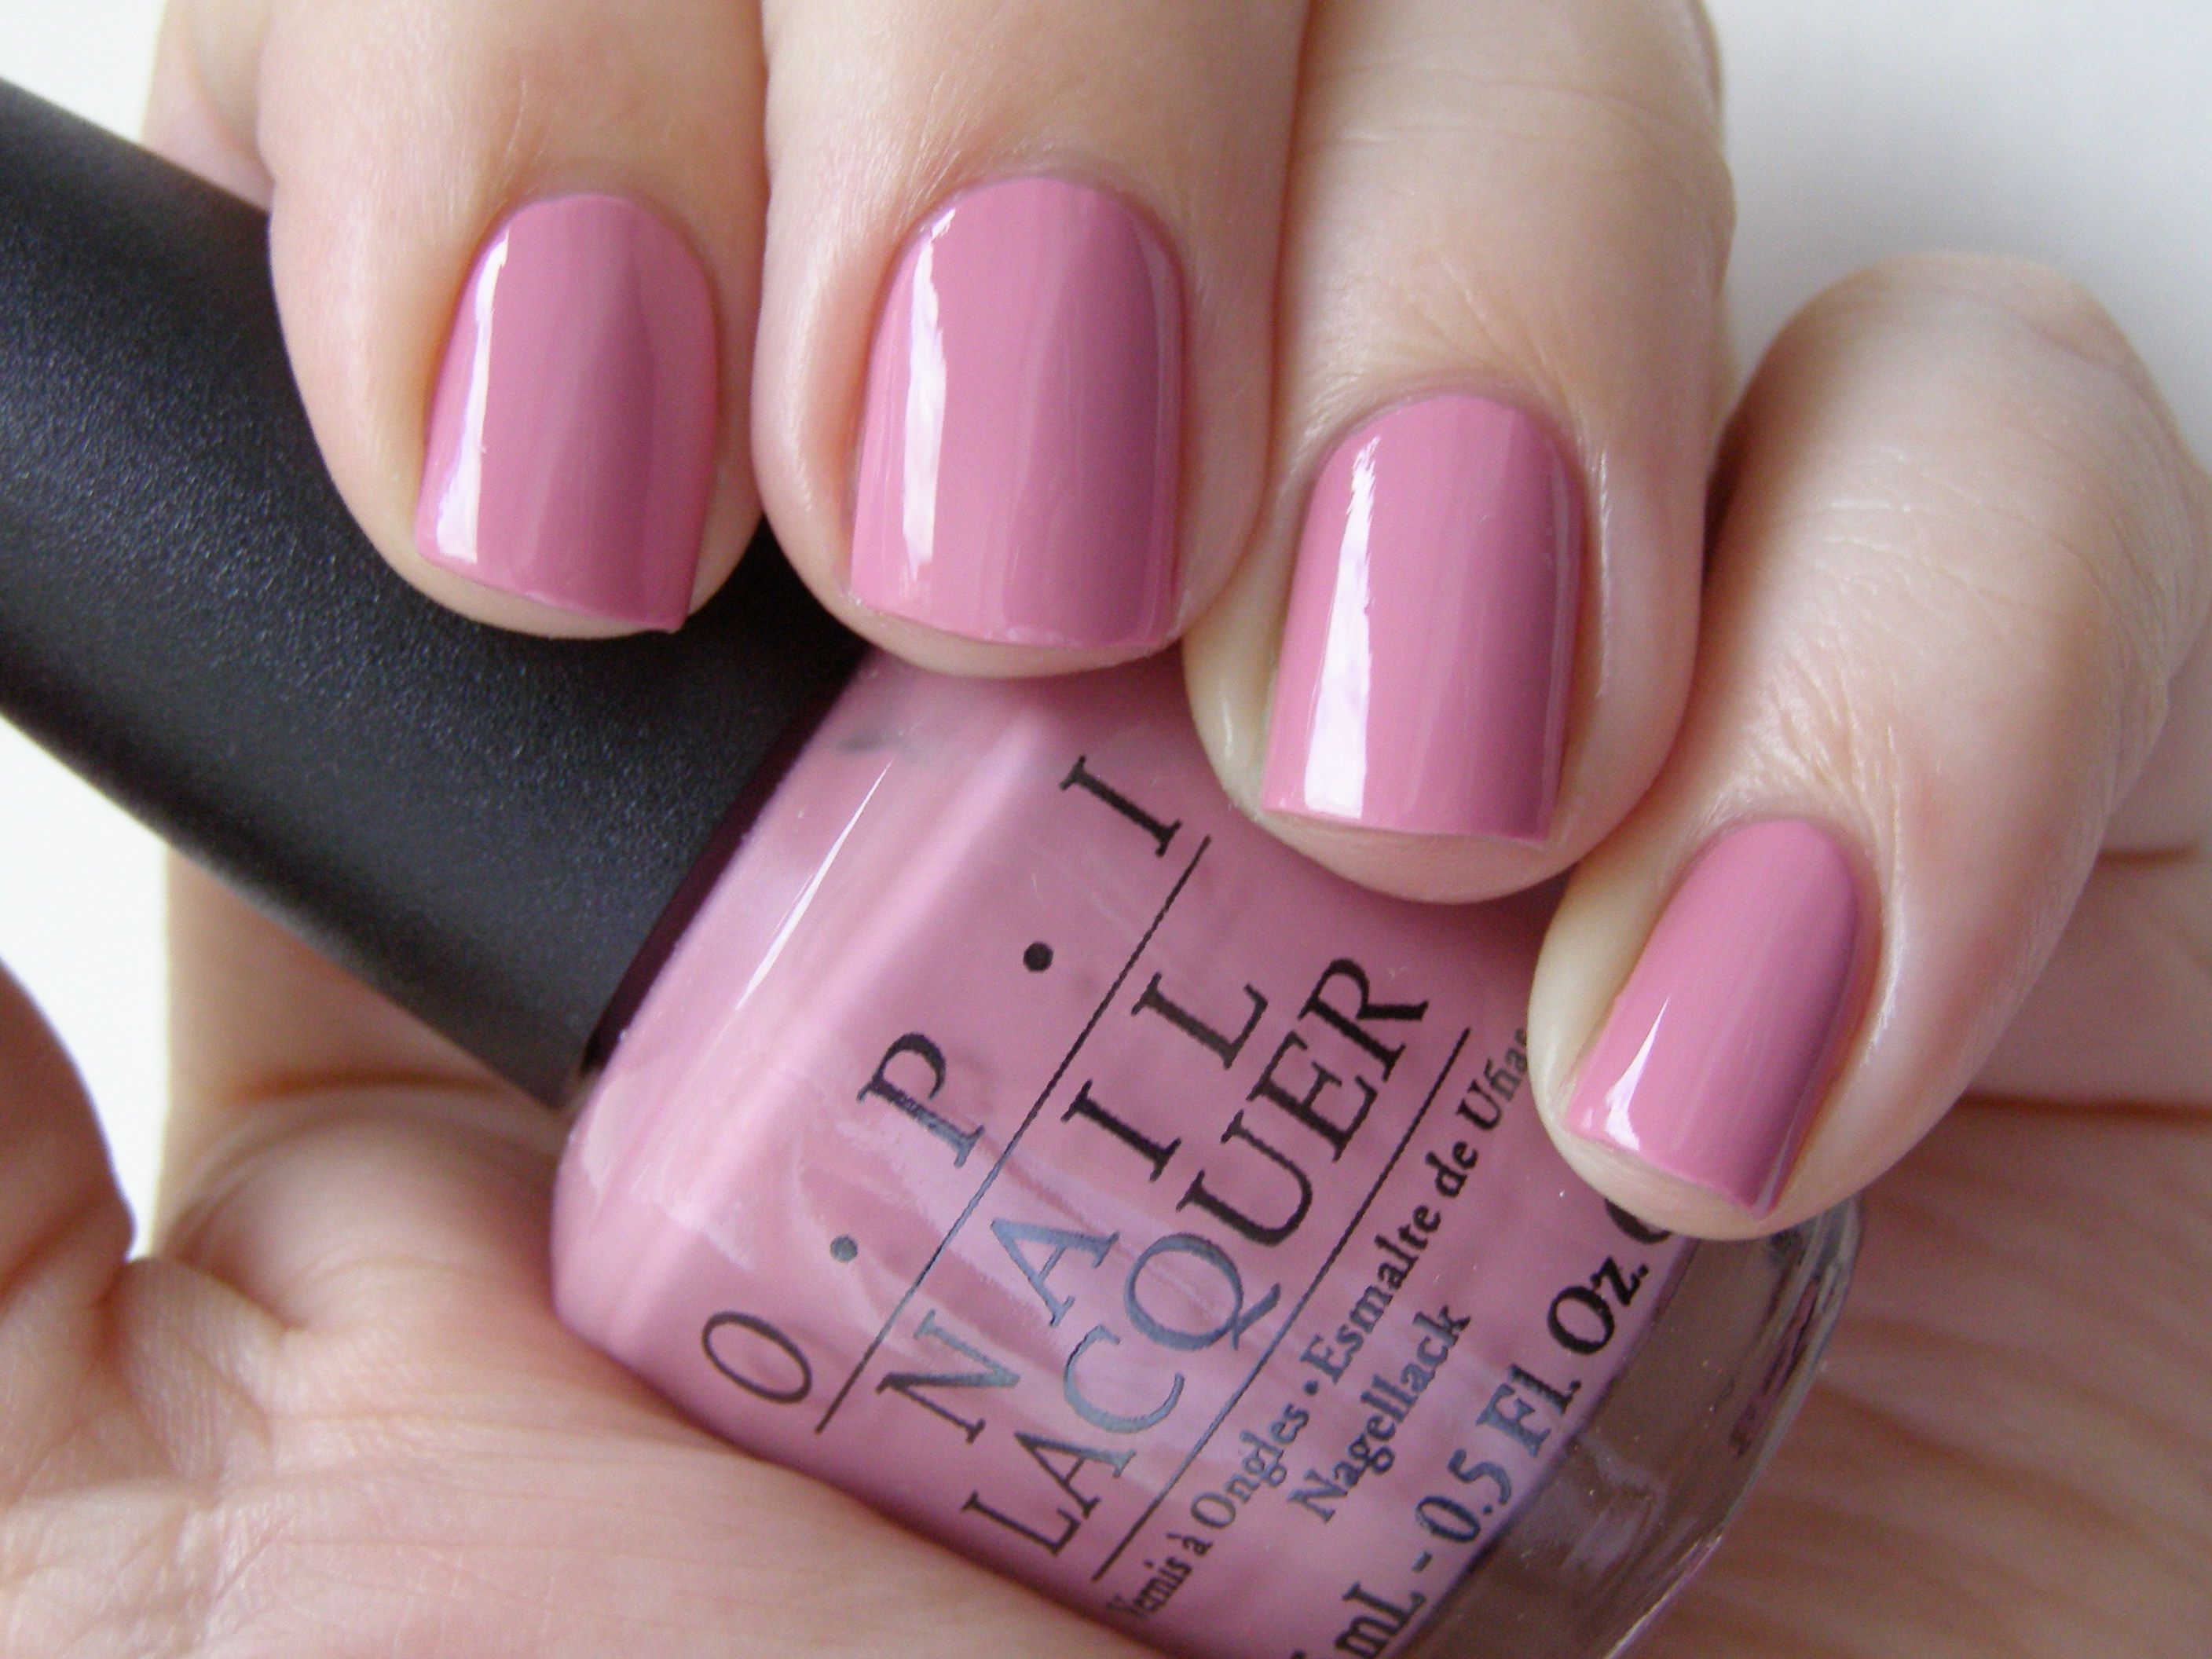 Pretty neutral pink. My favorite everyday nail color. OPI Sparrow Me ...